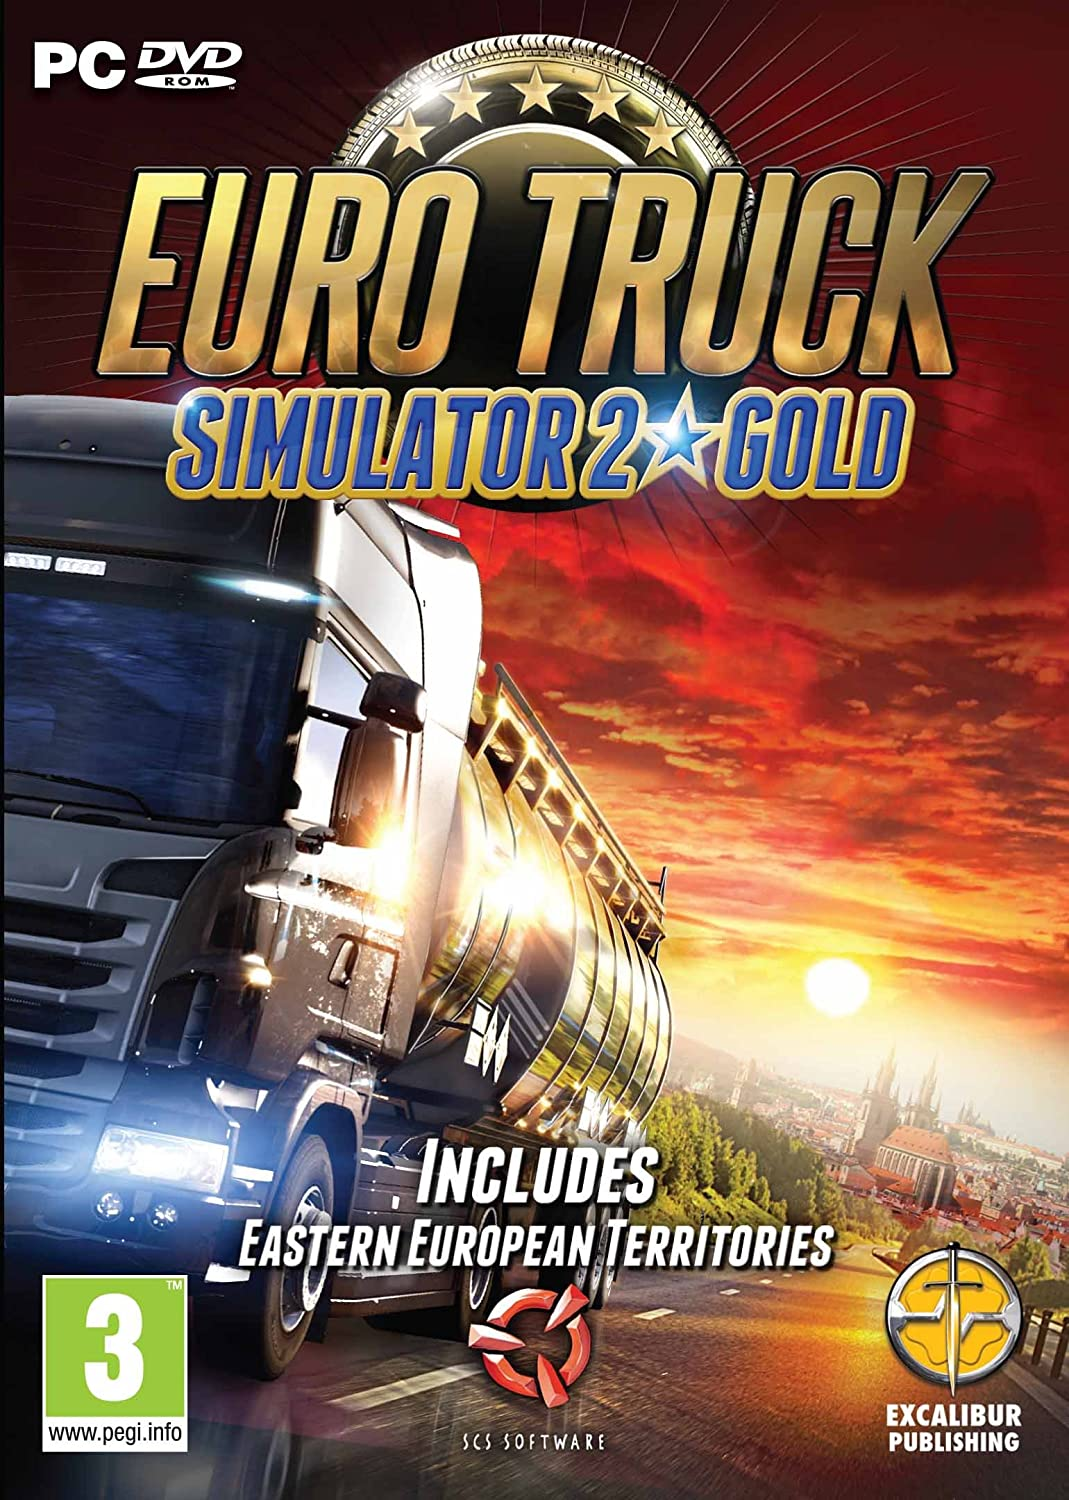 Euro Truck Simulator 2 Gold (PC CD): Amazon co uk: PC